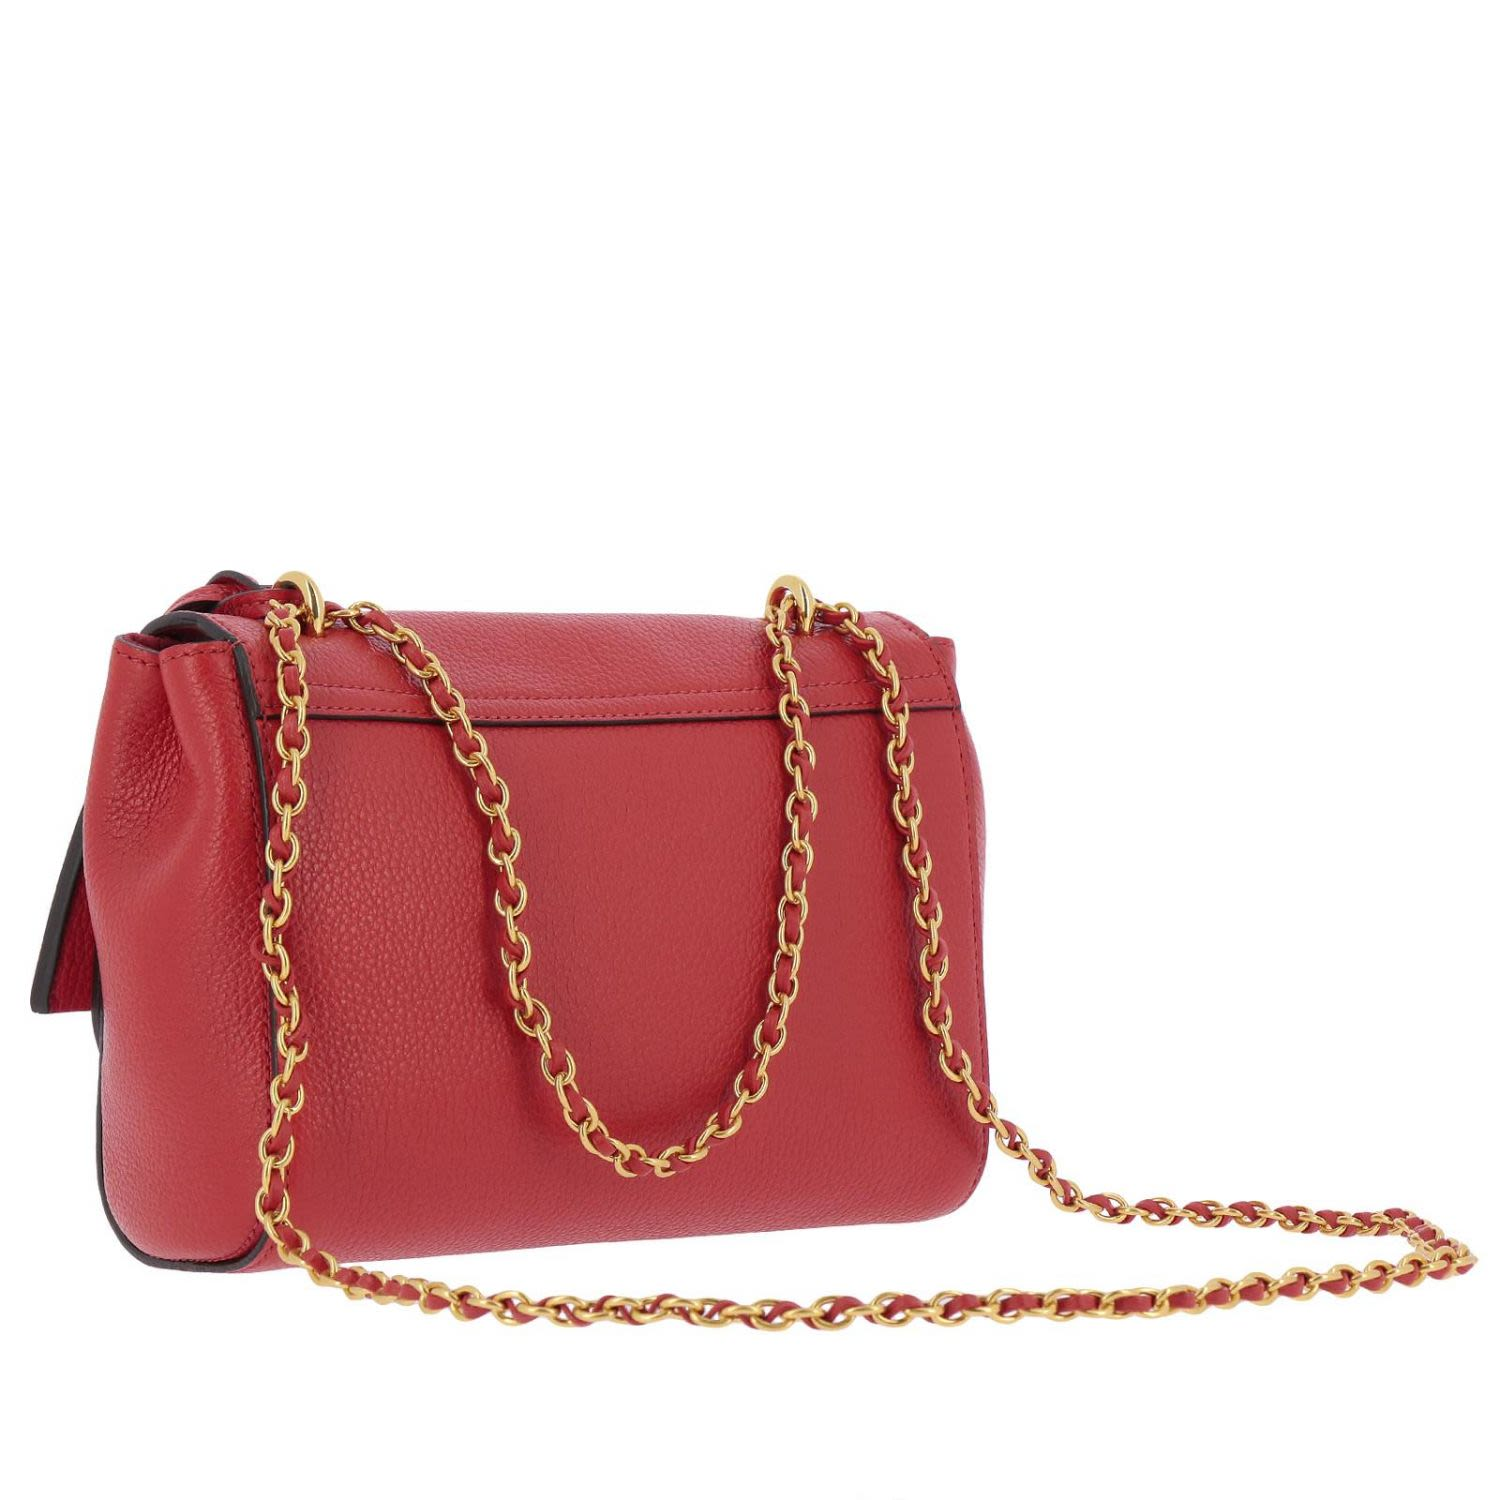 76cc715603 Mulberry Mulberry Mini Bag Shoulder Bag Women Mulberry - red ...